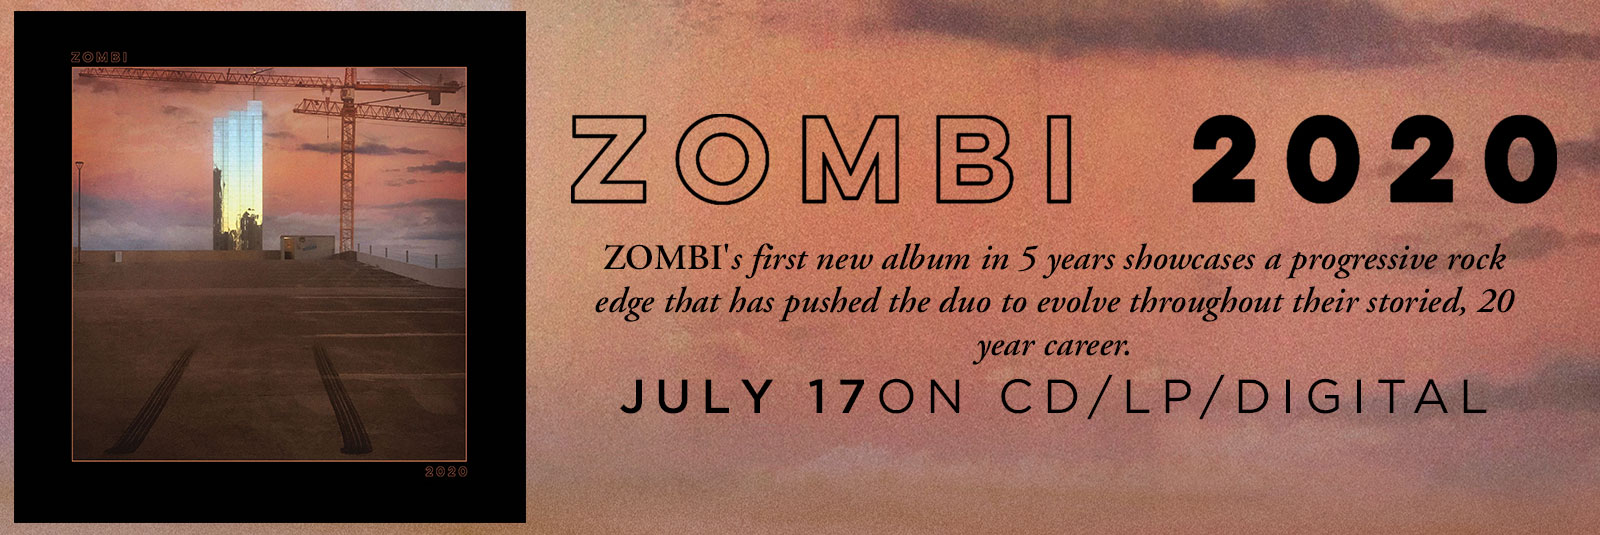 zombi-2020-instrumental-hard-rock-relapse-july-17